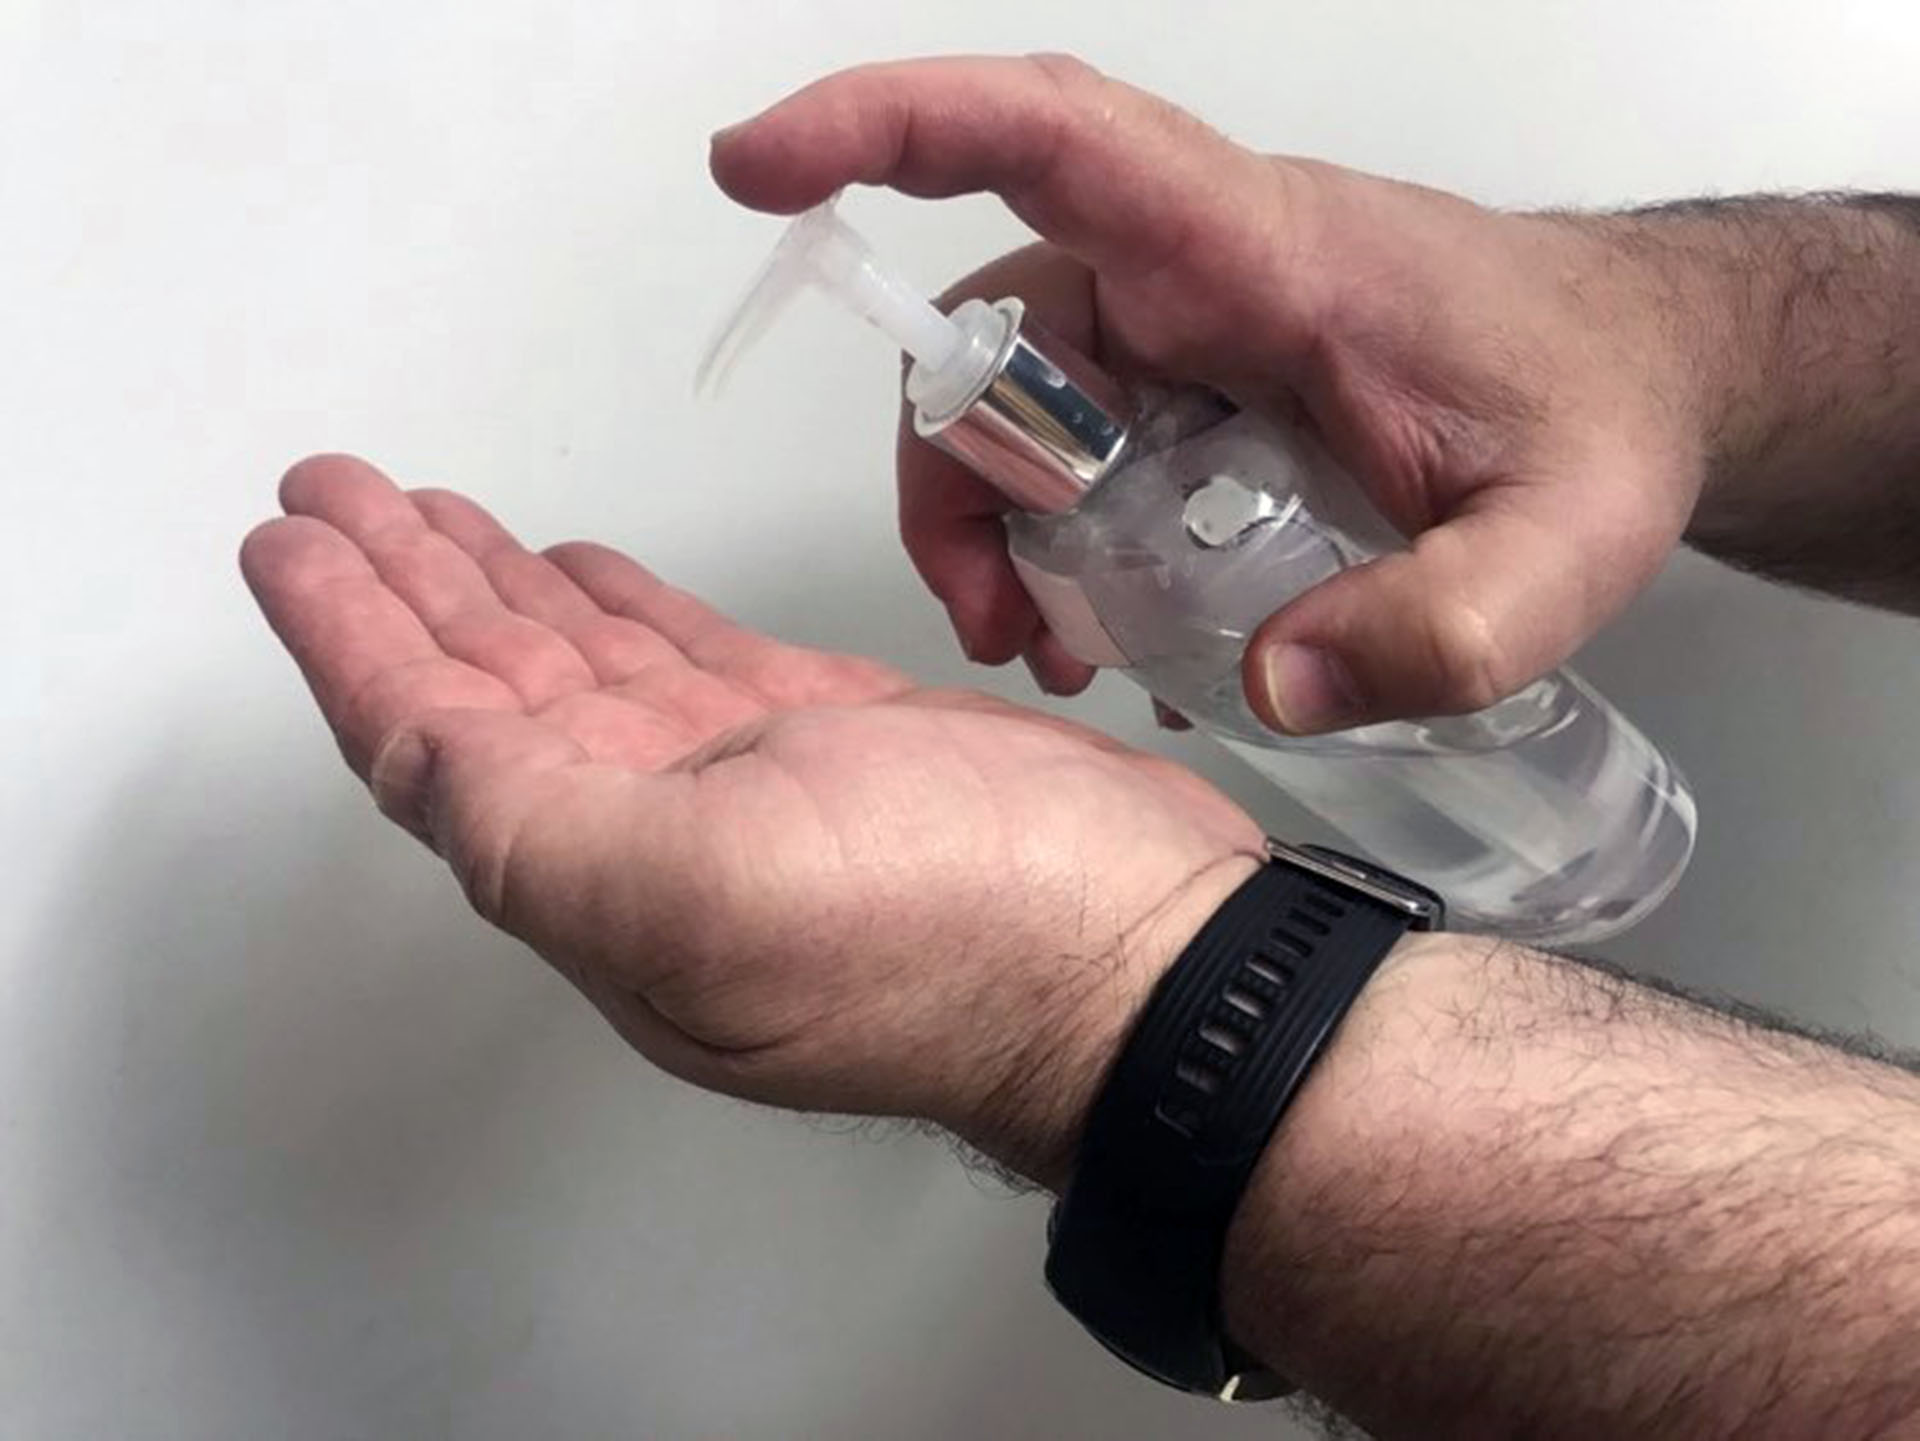 Food and Drug Administration warns against using hand sanitizer from Eskbiochem